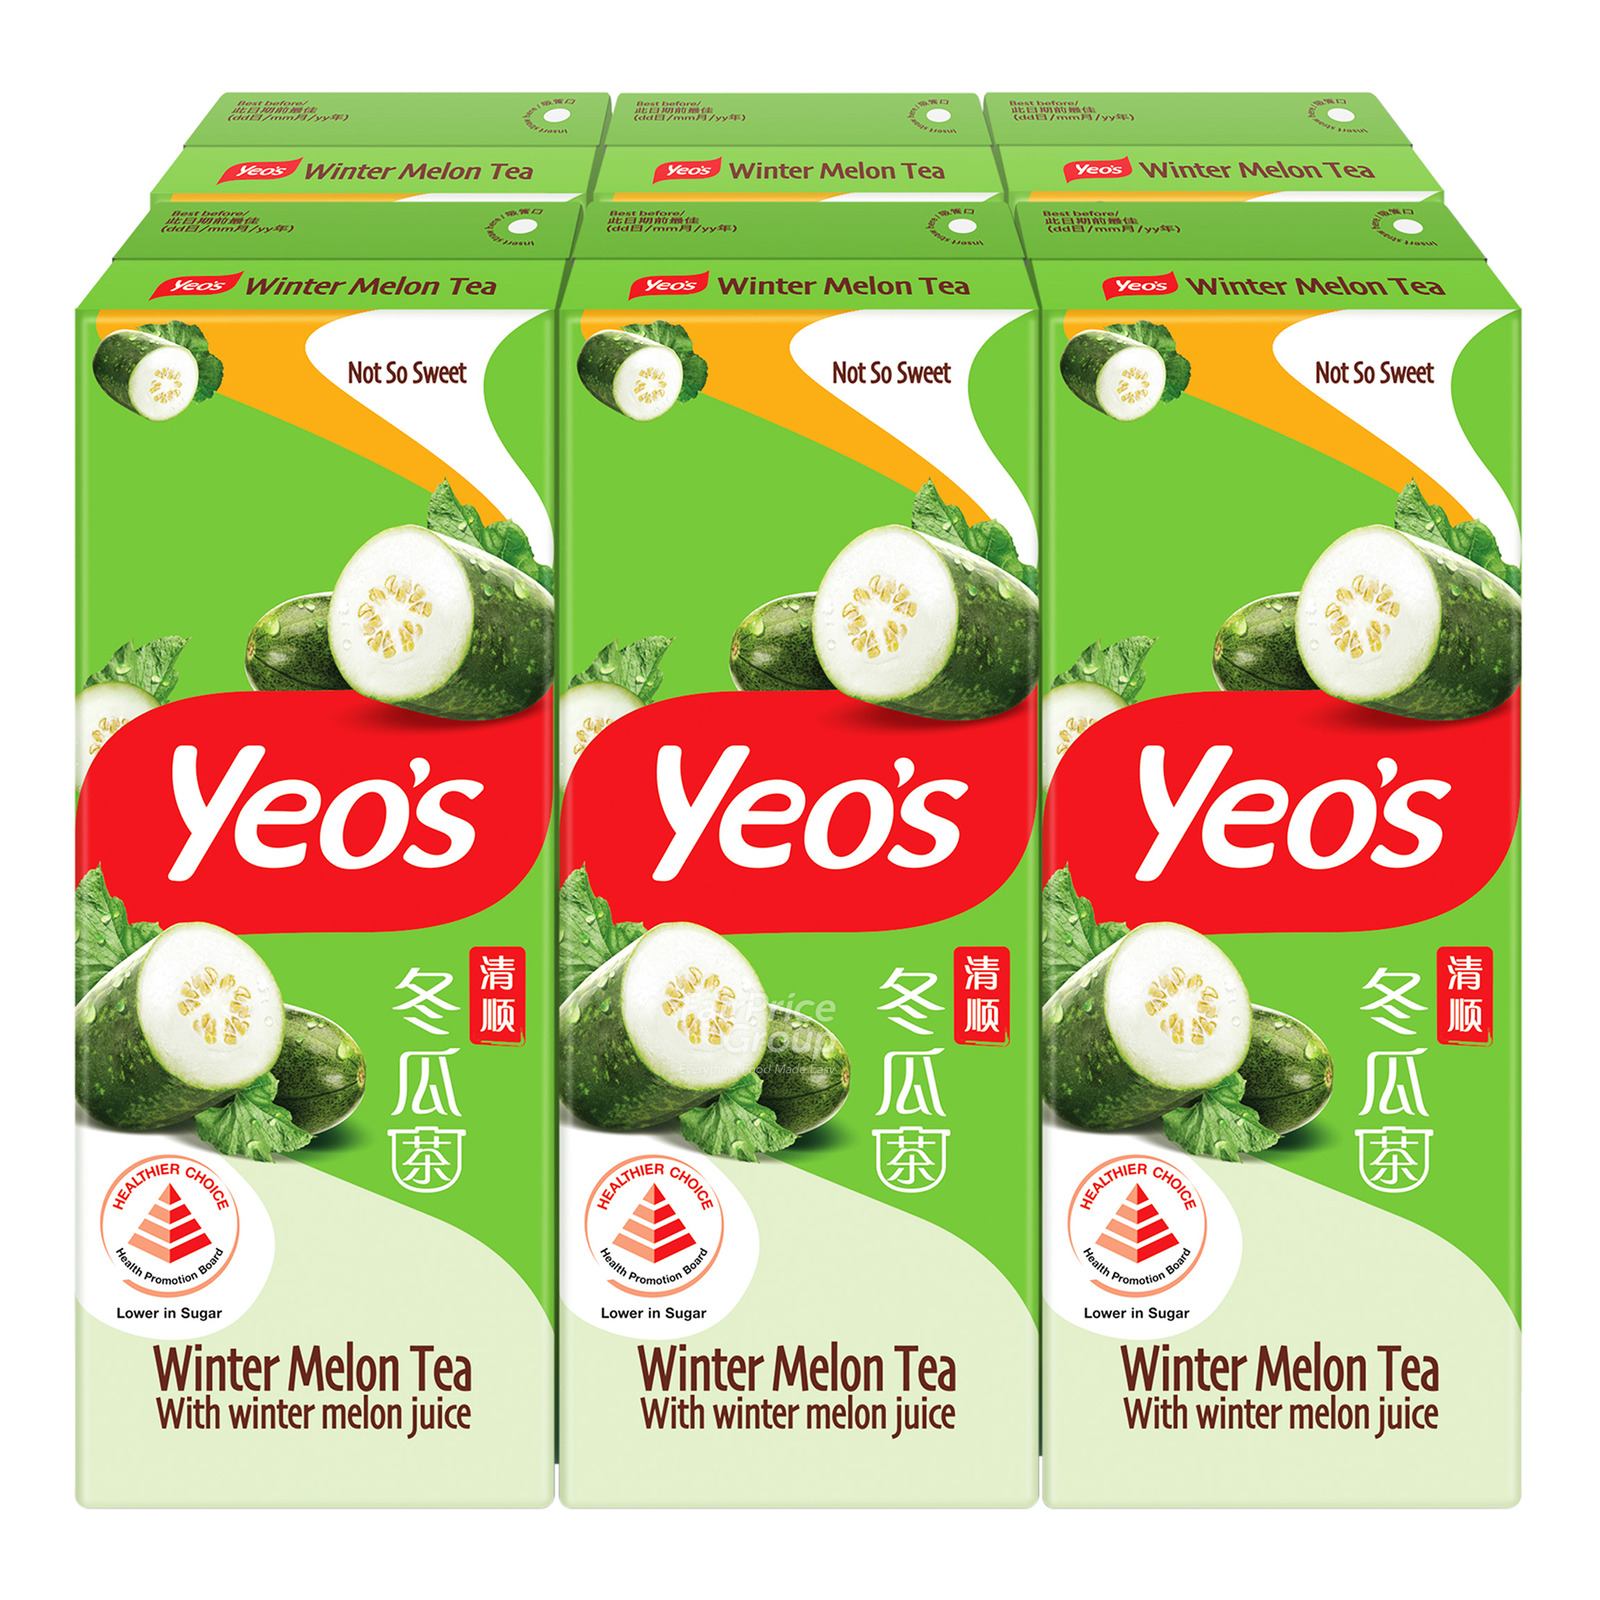 Yeo's Packet Drink - Winter Melon Tea (Not So Sweet)